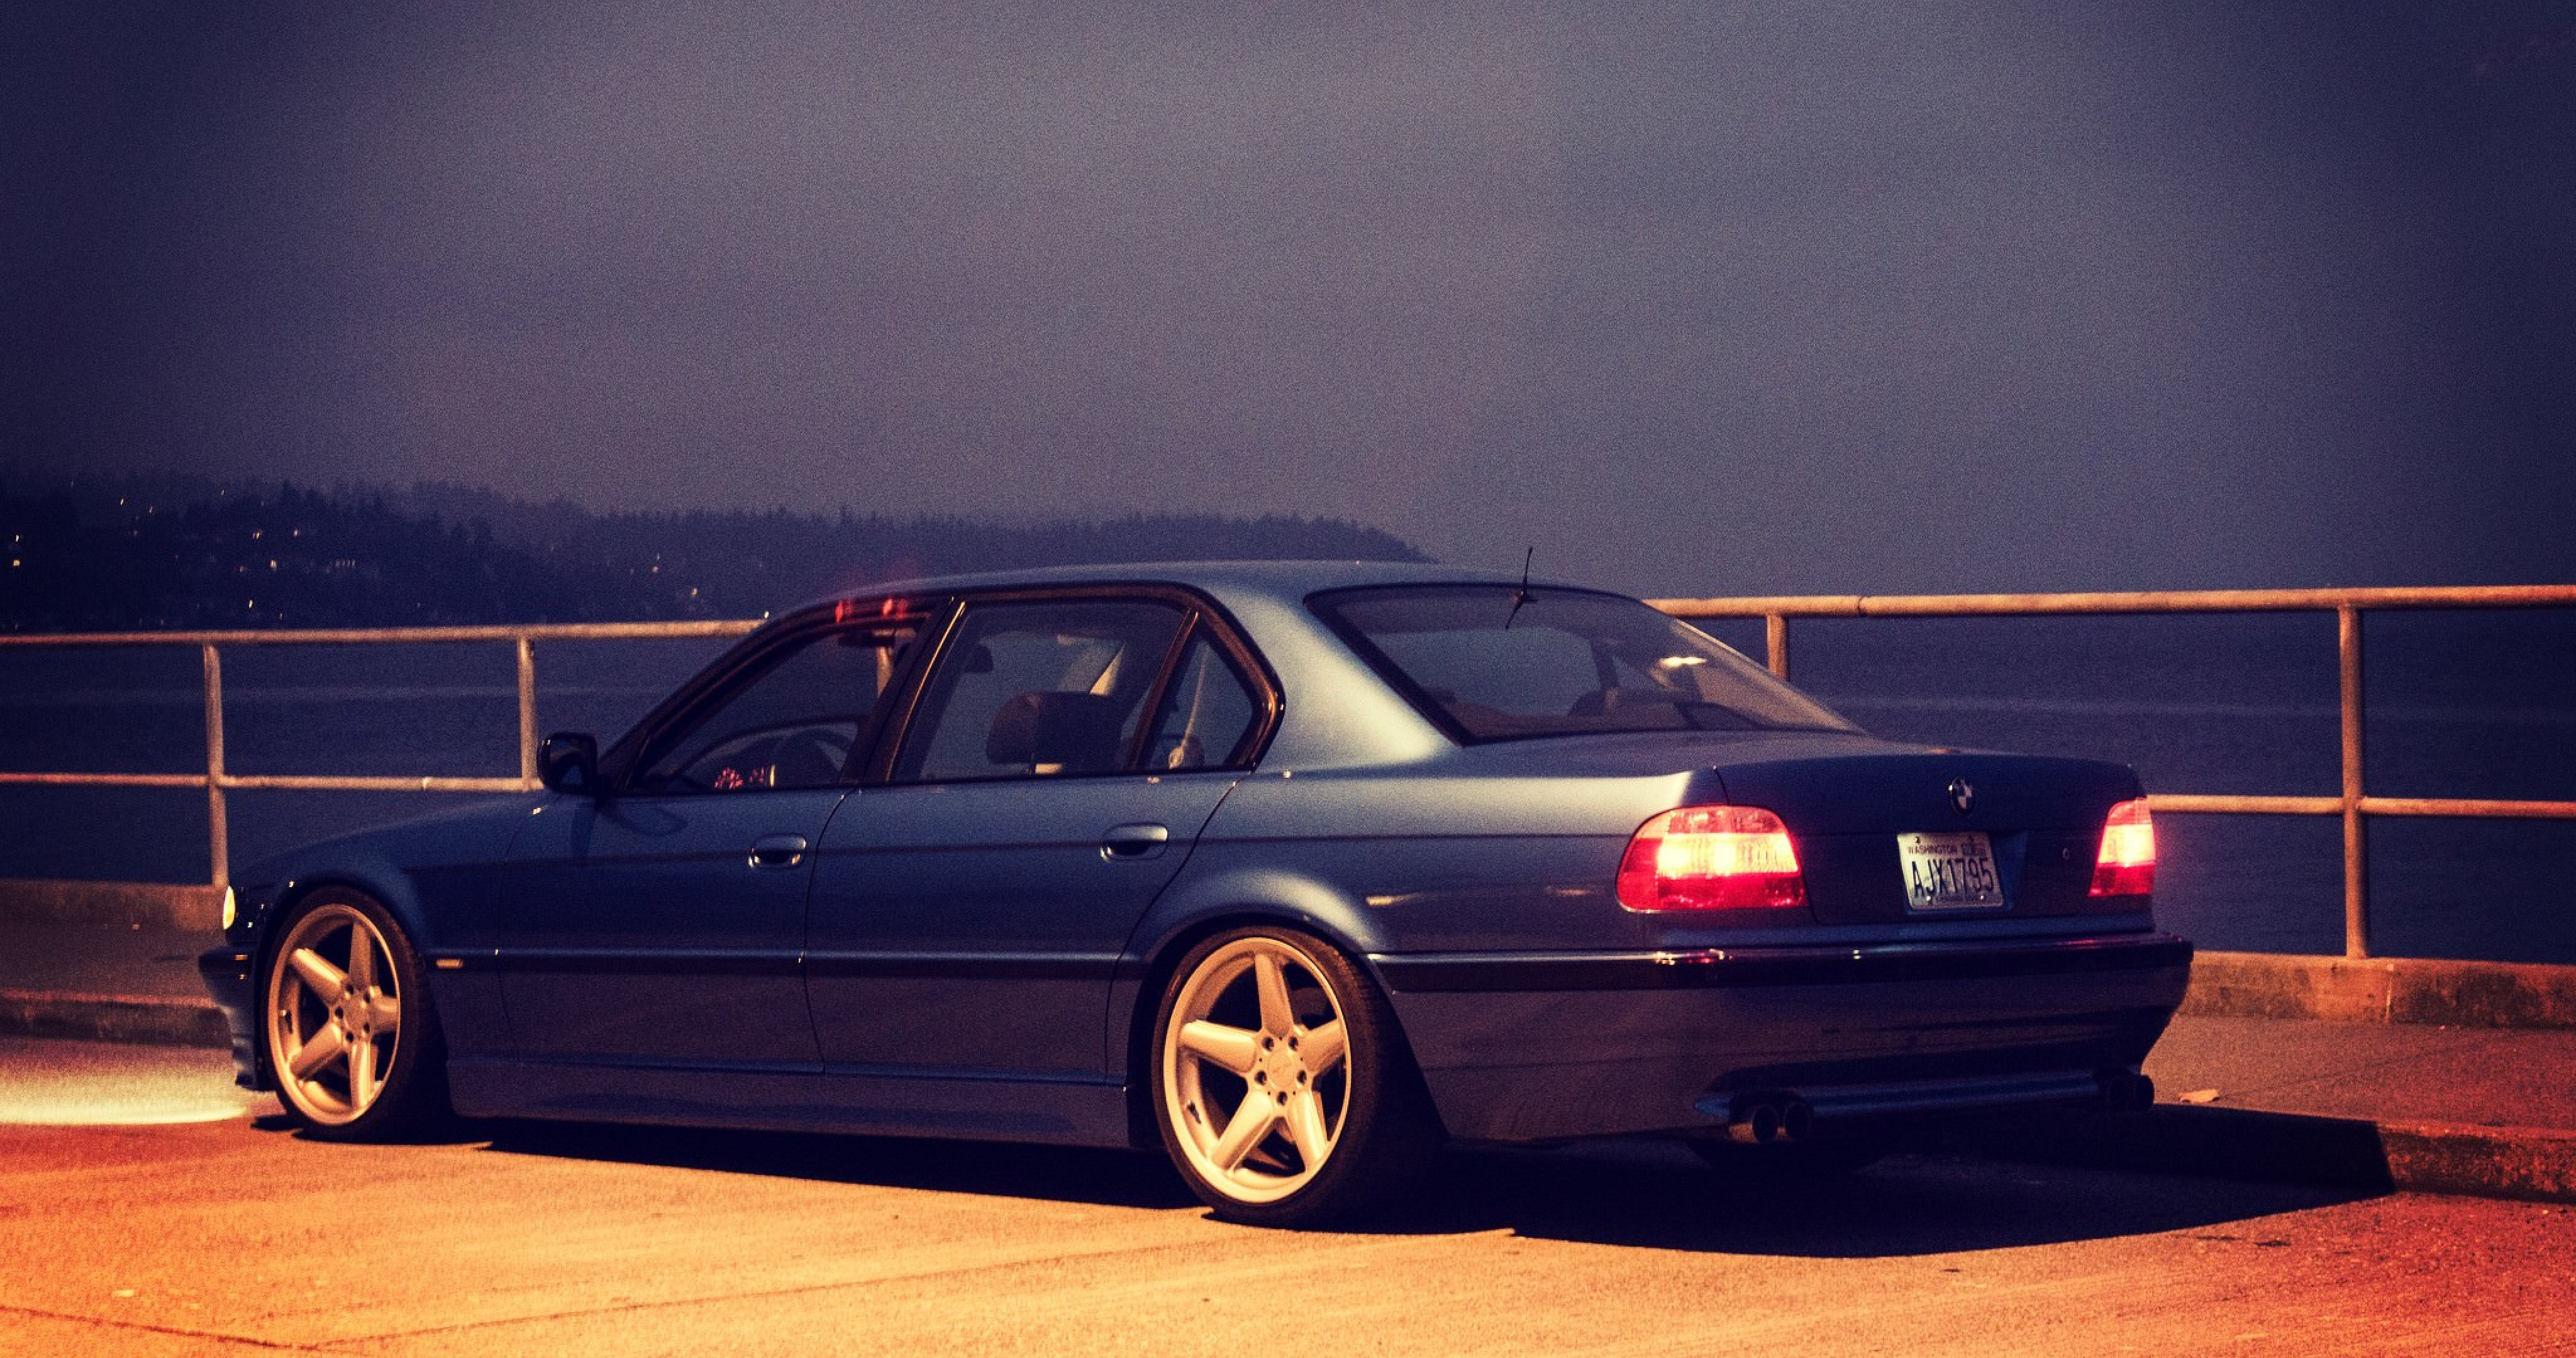 Bmw E38 750il Wallpaper 4k Ultra Hd Wallpaper High Quality Walls